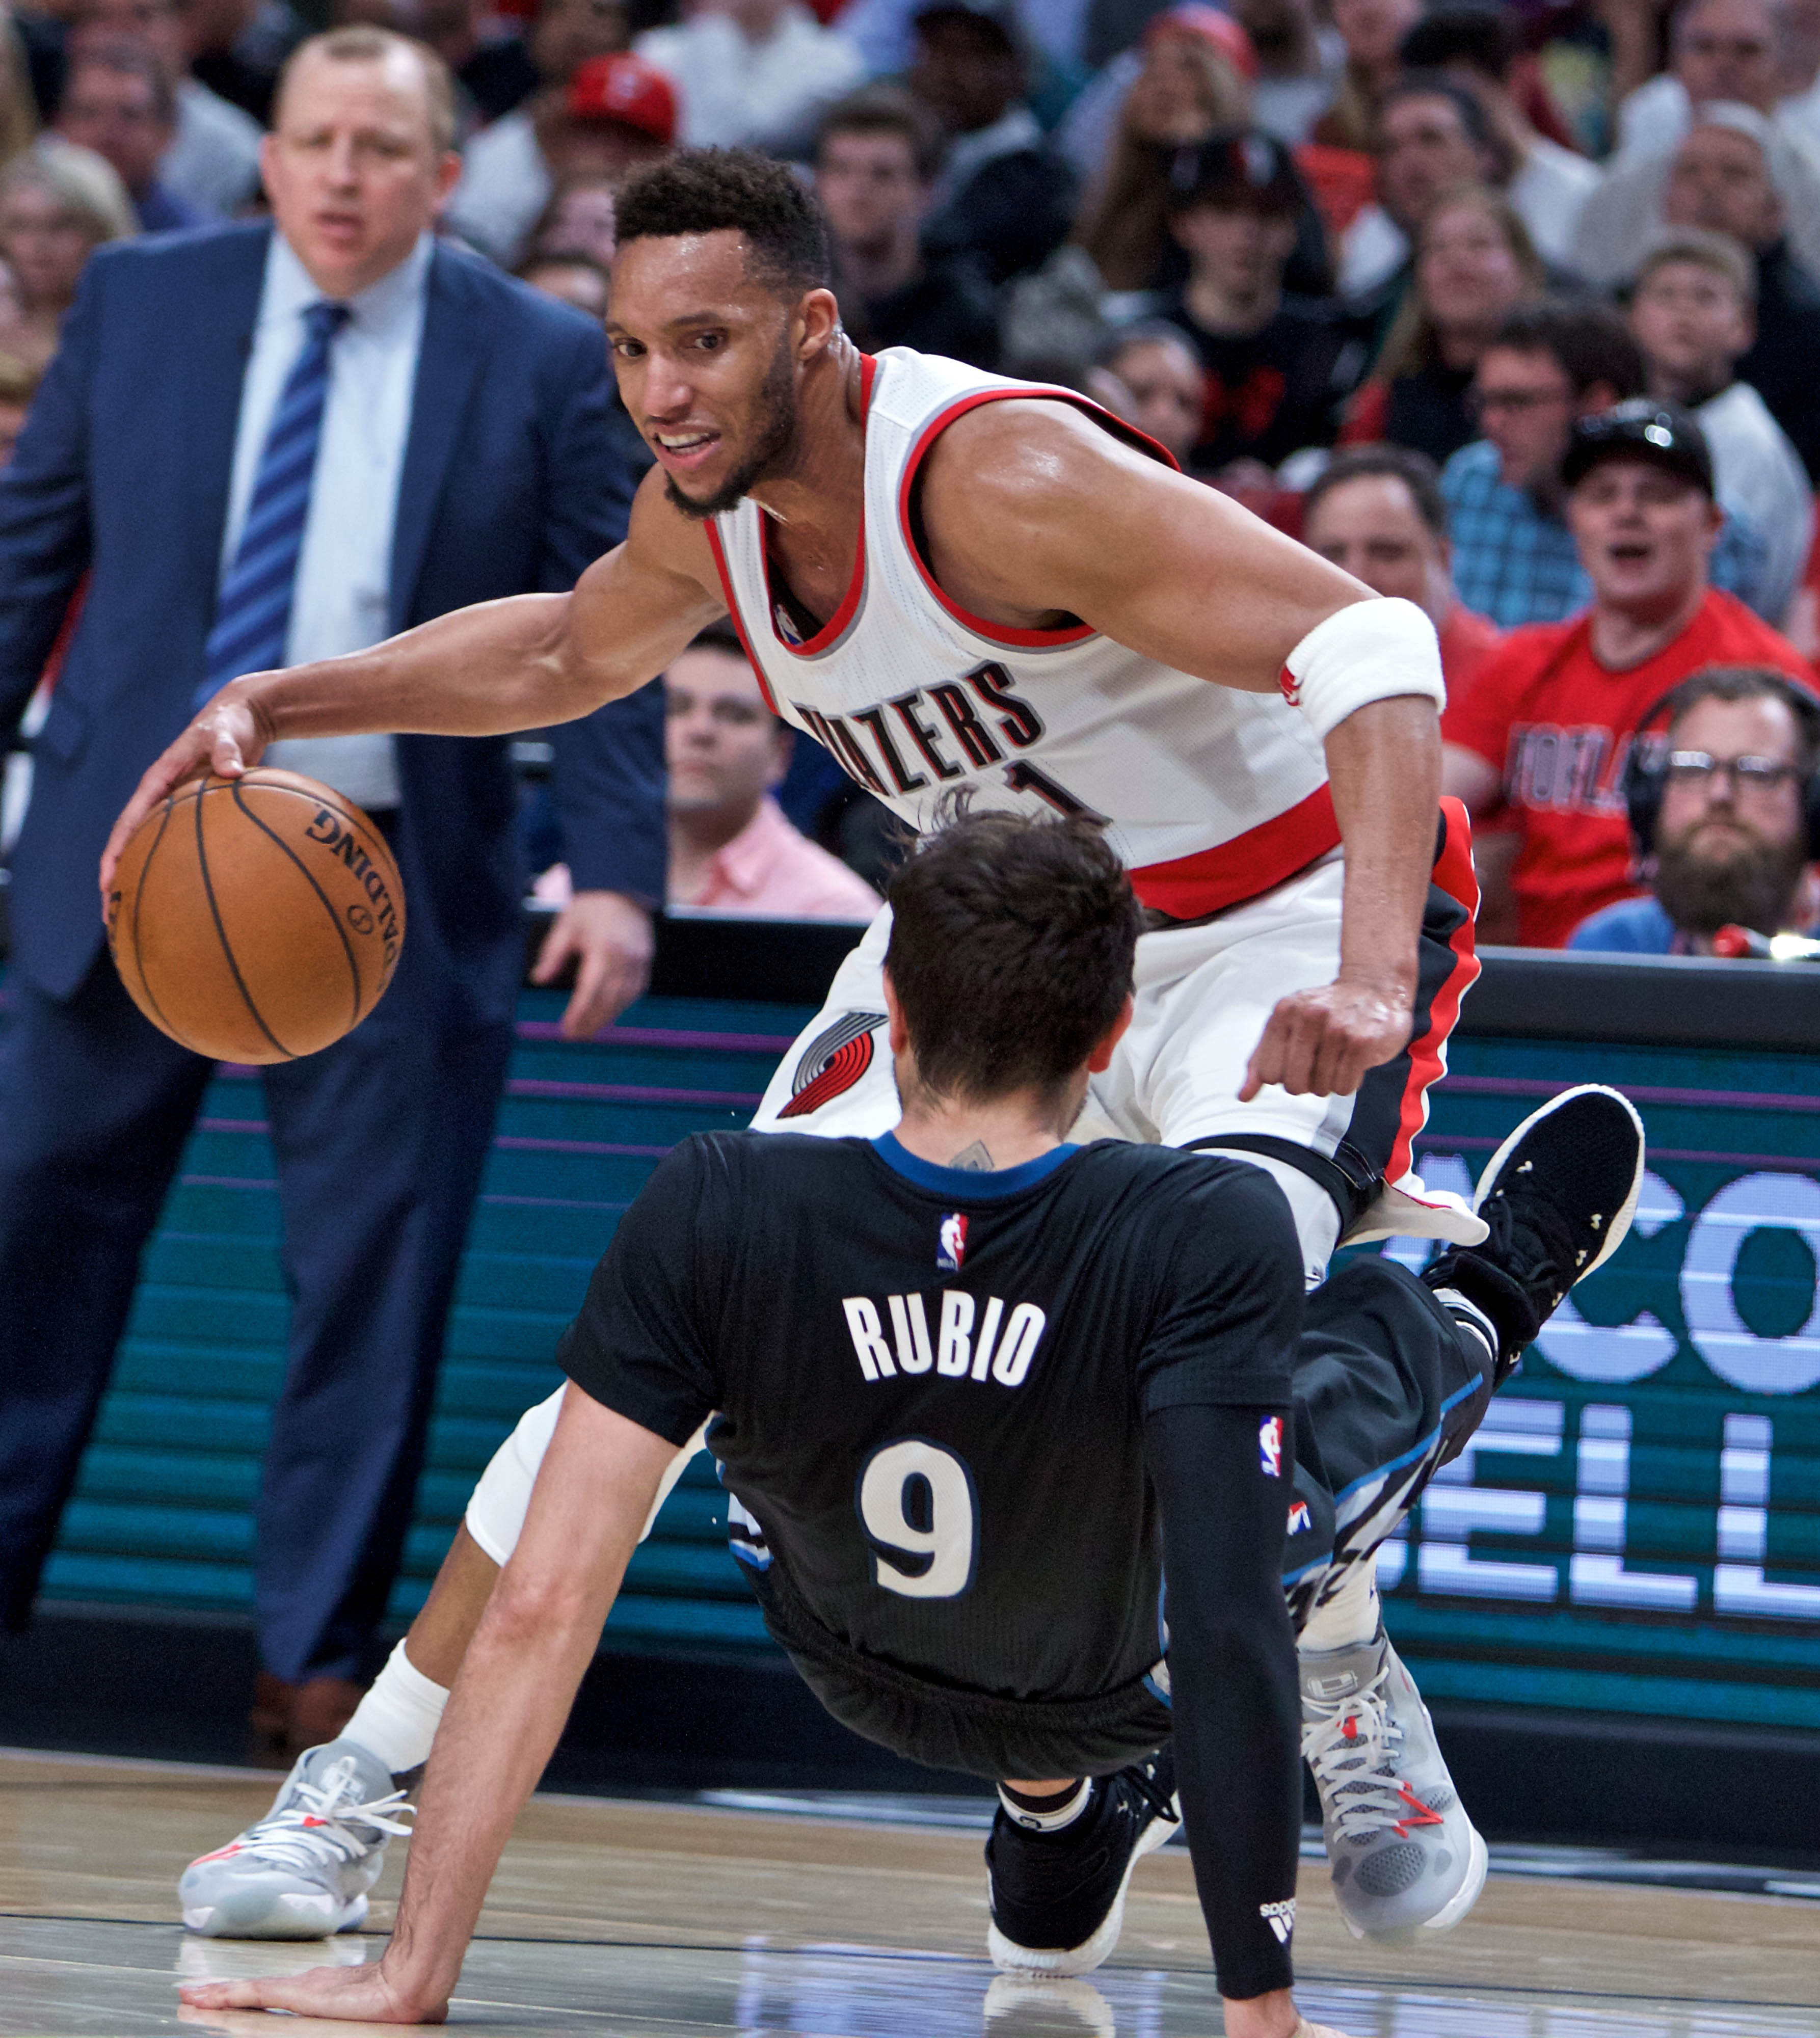 Portland Trail Blazers Worst Draft Picks: 4 Blazers That Need To Step Up The Most Against Golden State